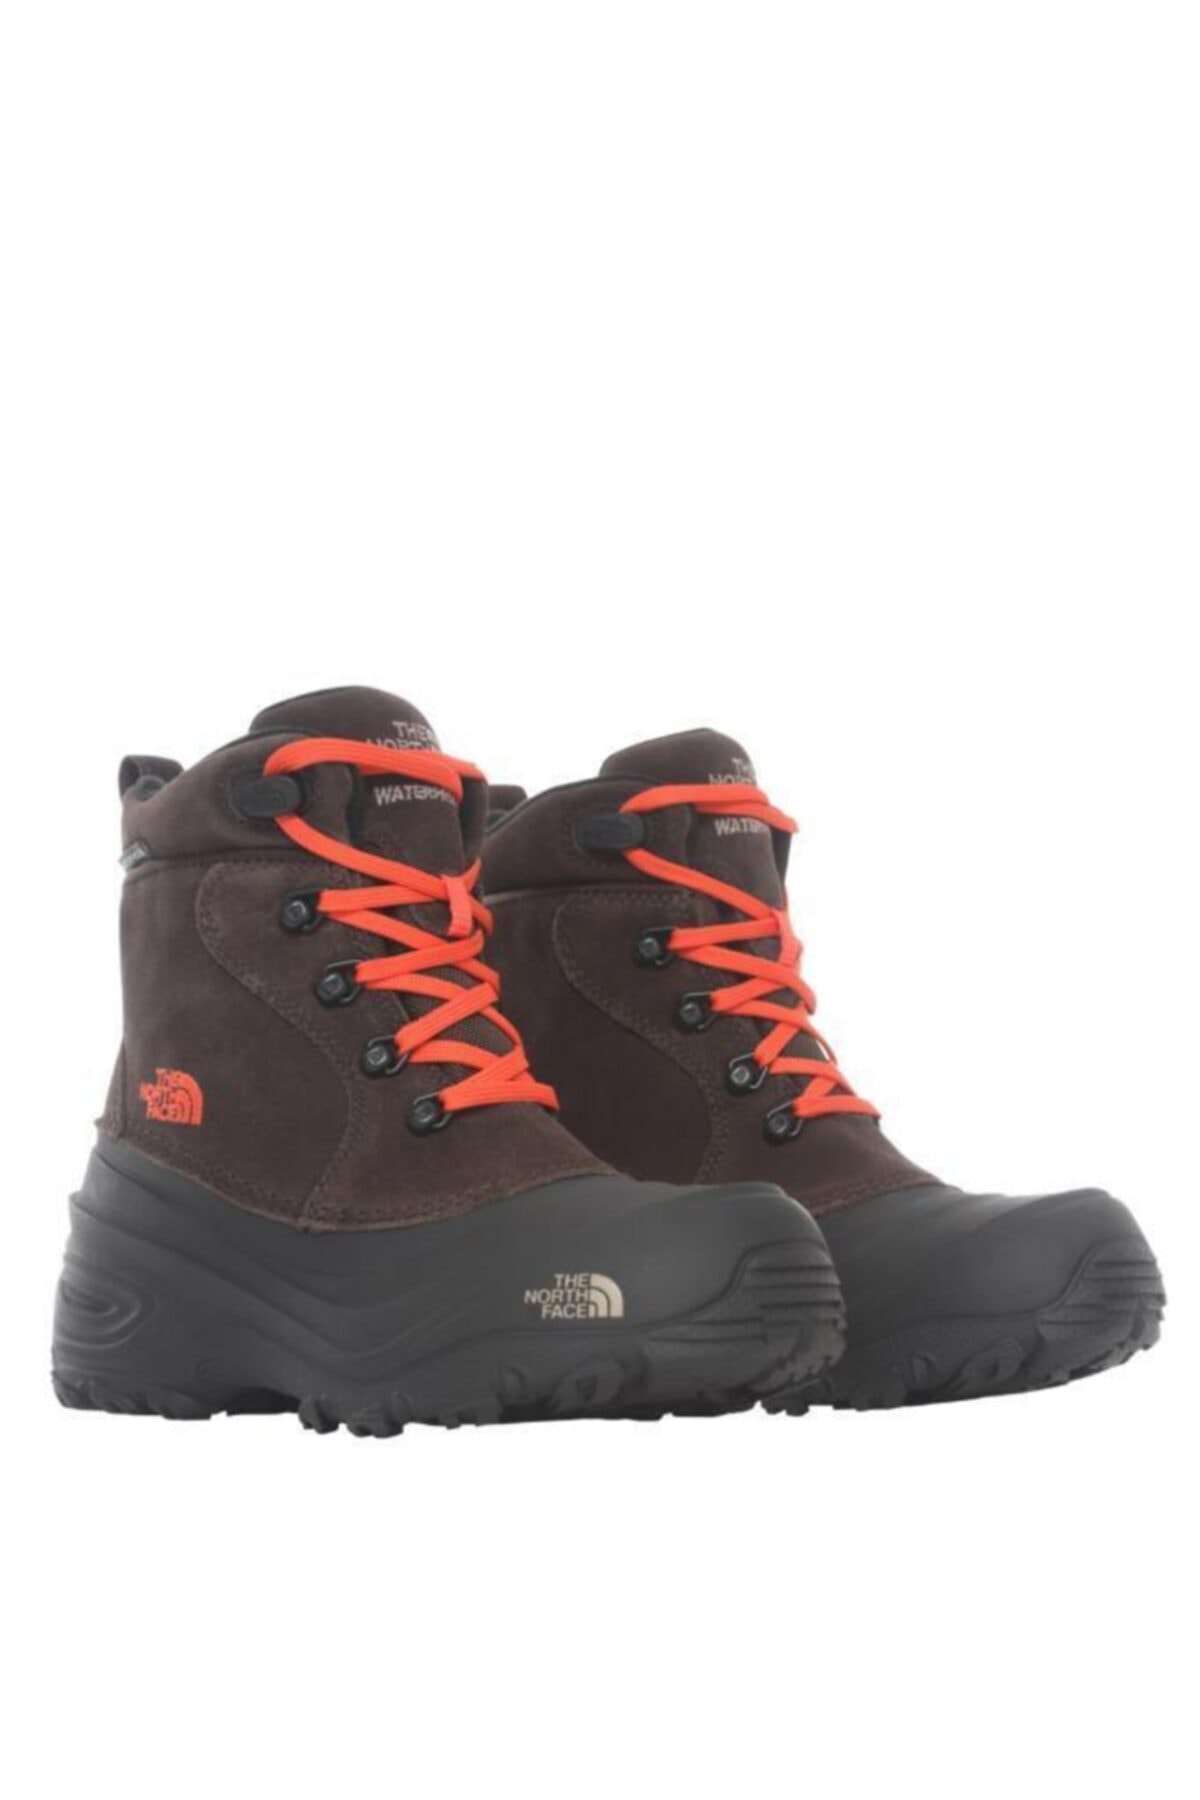 THE NORTH FACE Youth Chilkat Lace 2 Çocuk Bot Kahverengi 2